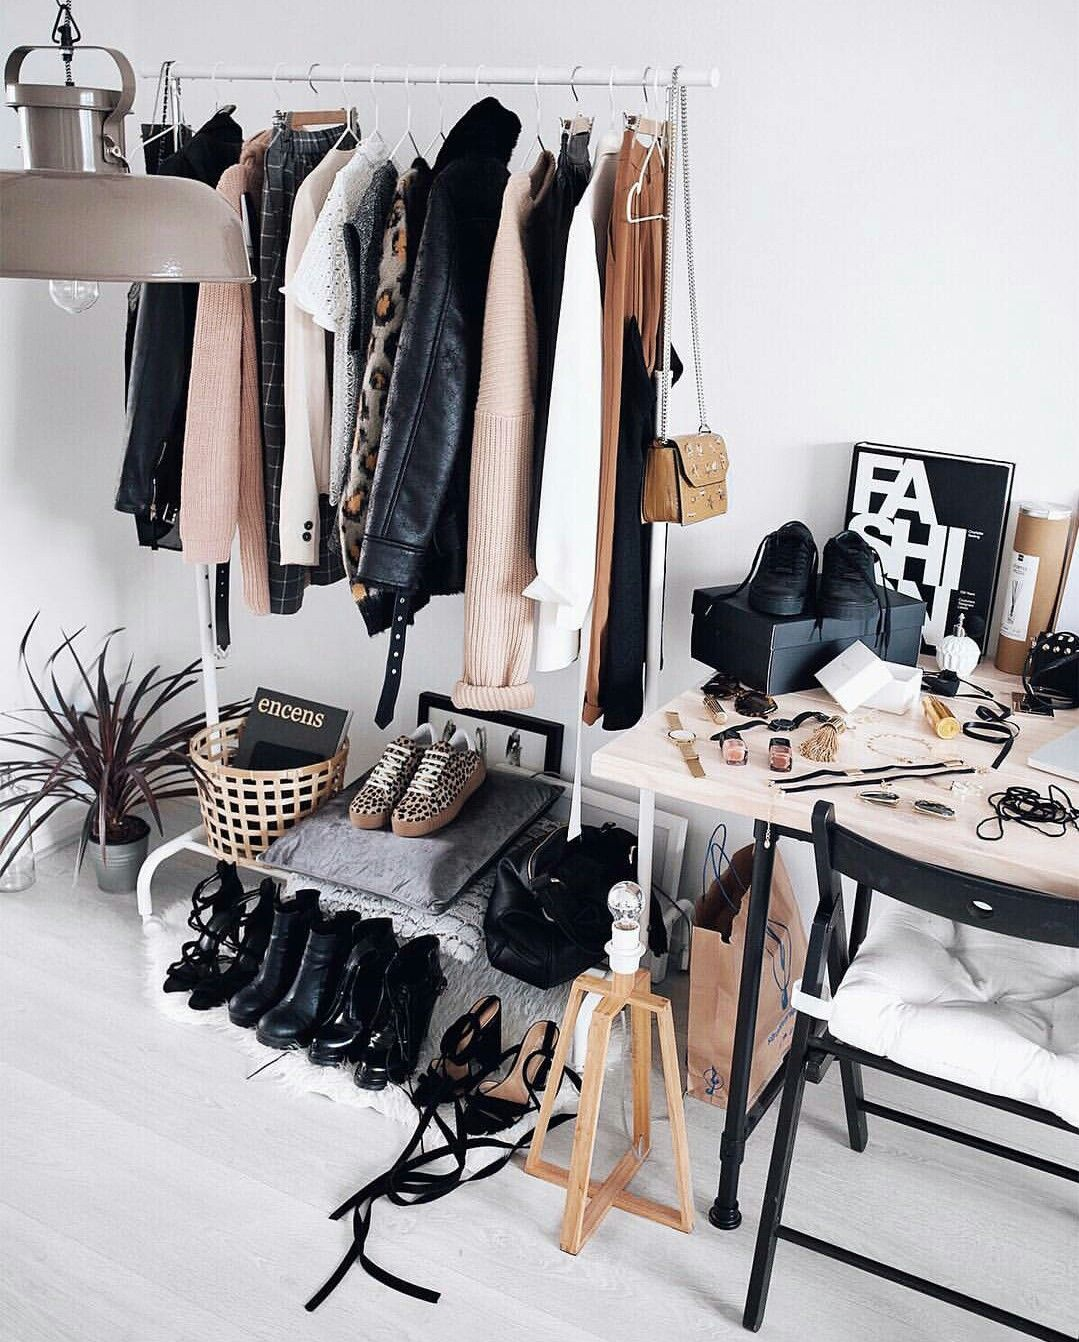 Desk In Closet With Clothes